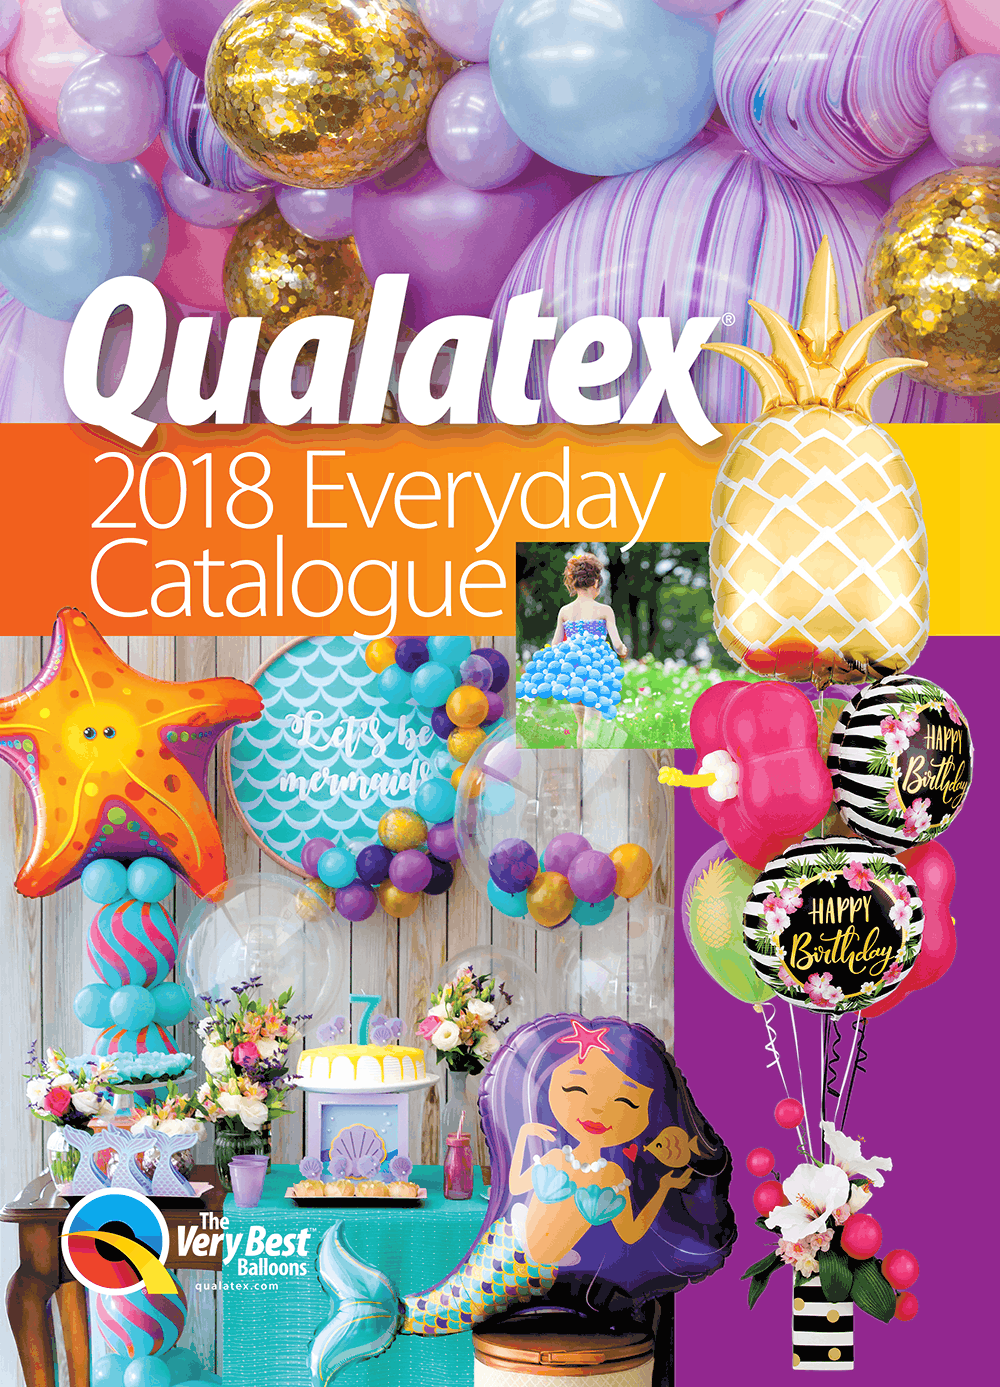 Qualatex gids 2018 - Over De Decoratieballon